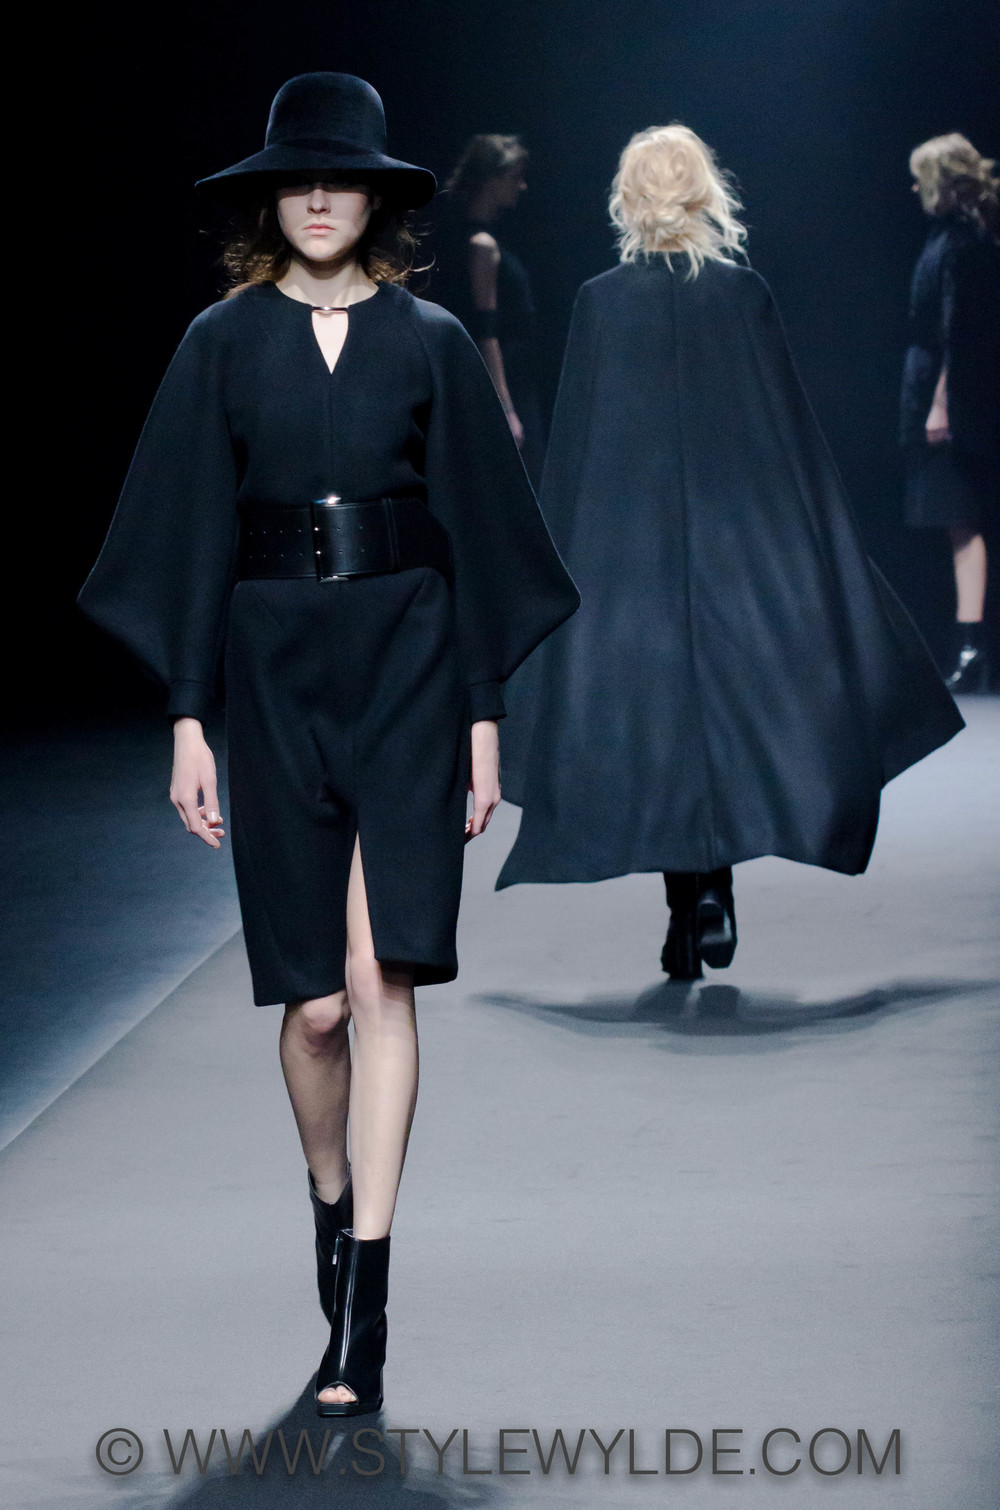 stylewylde_ADF_AW14_edited (10 of 22).jpg